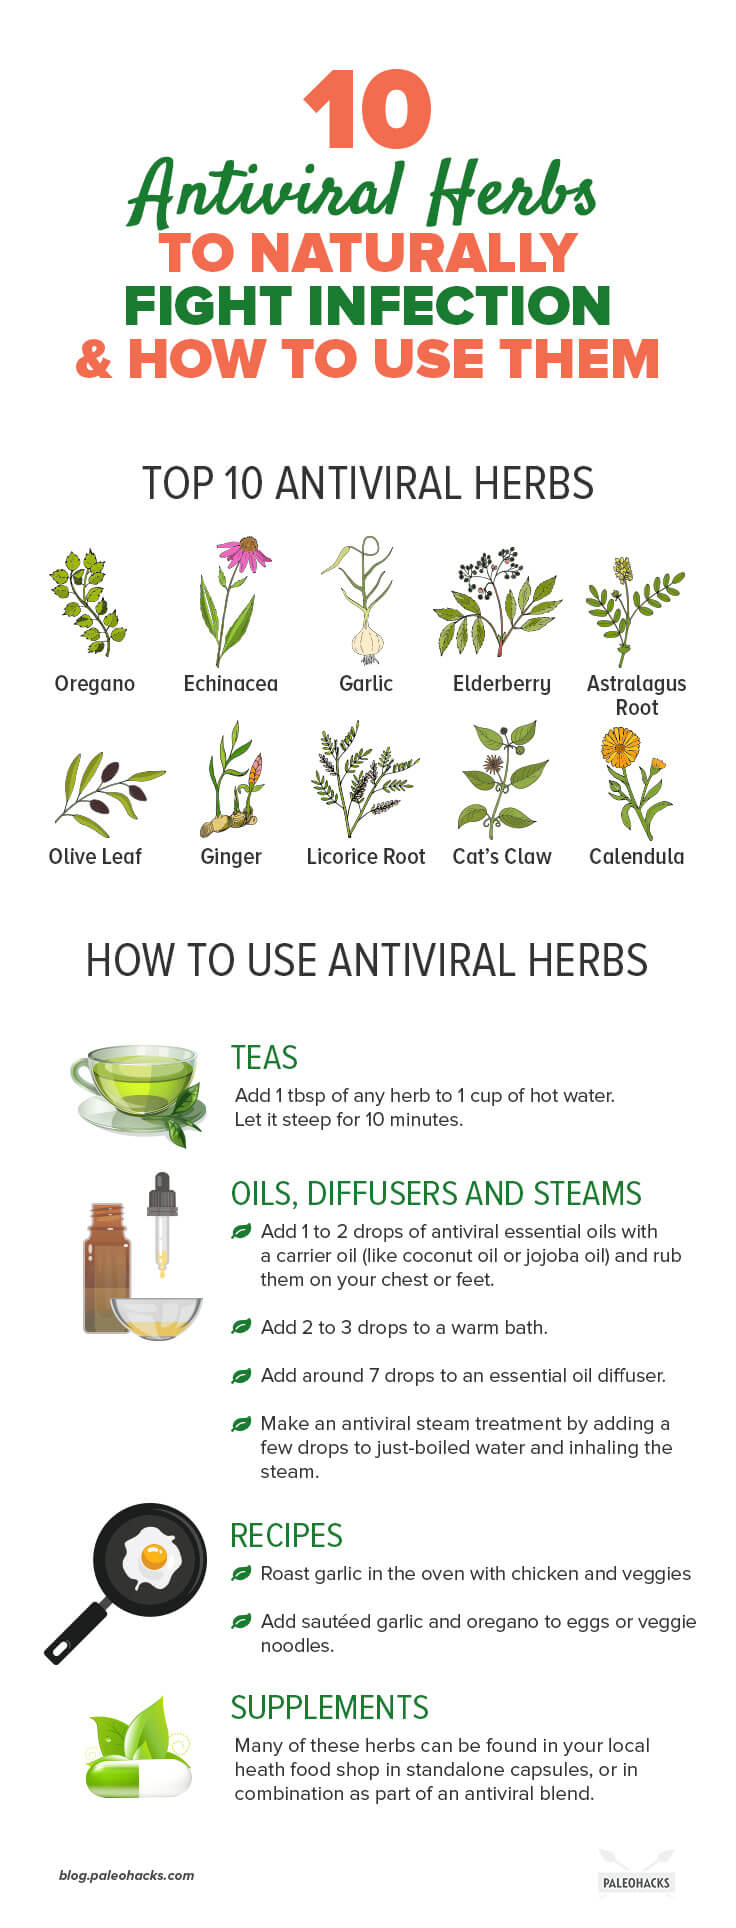 10 Antiviral Herbs to Naturally Fight Infection & How to Use